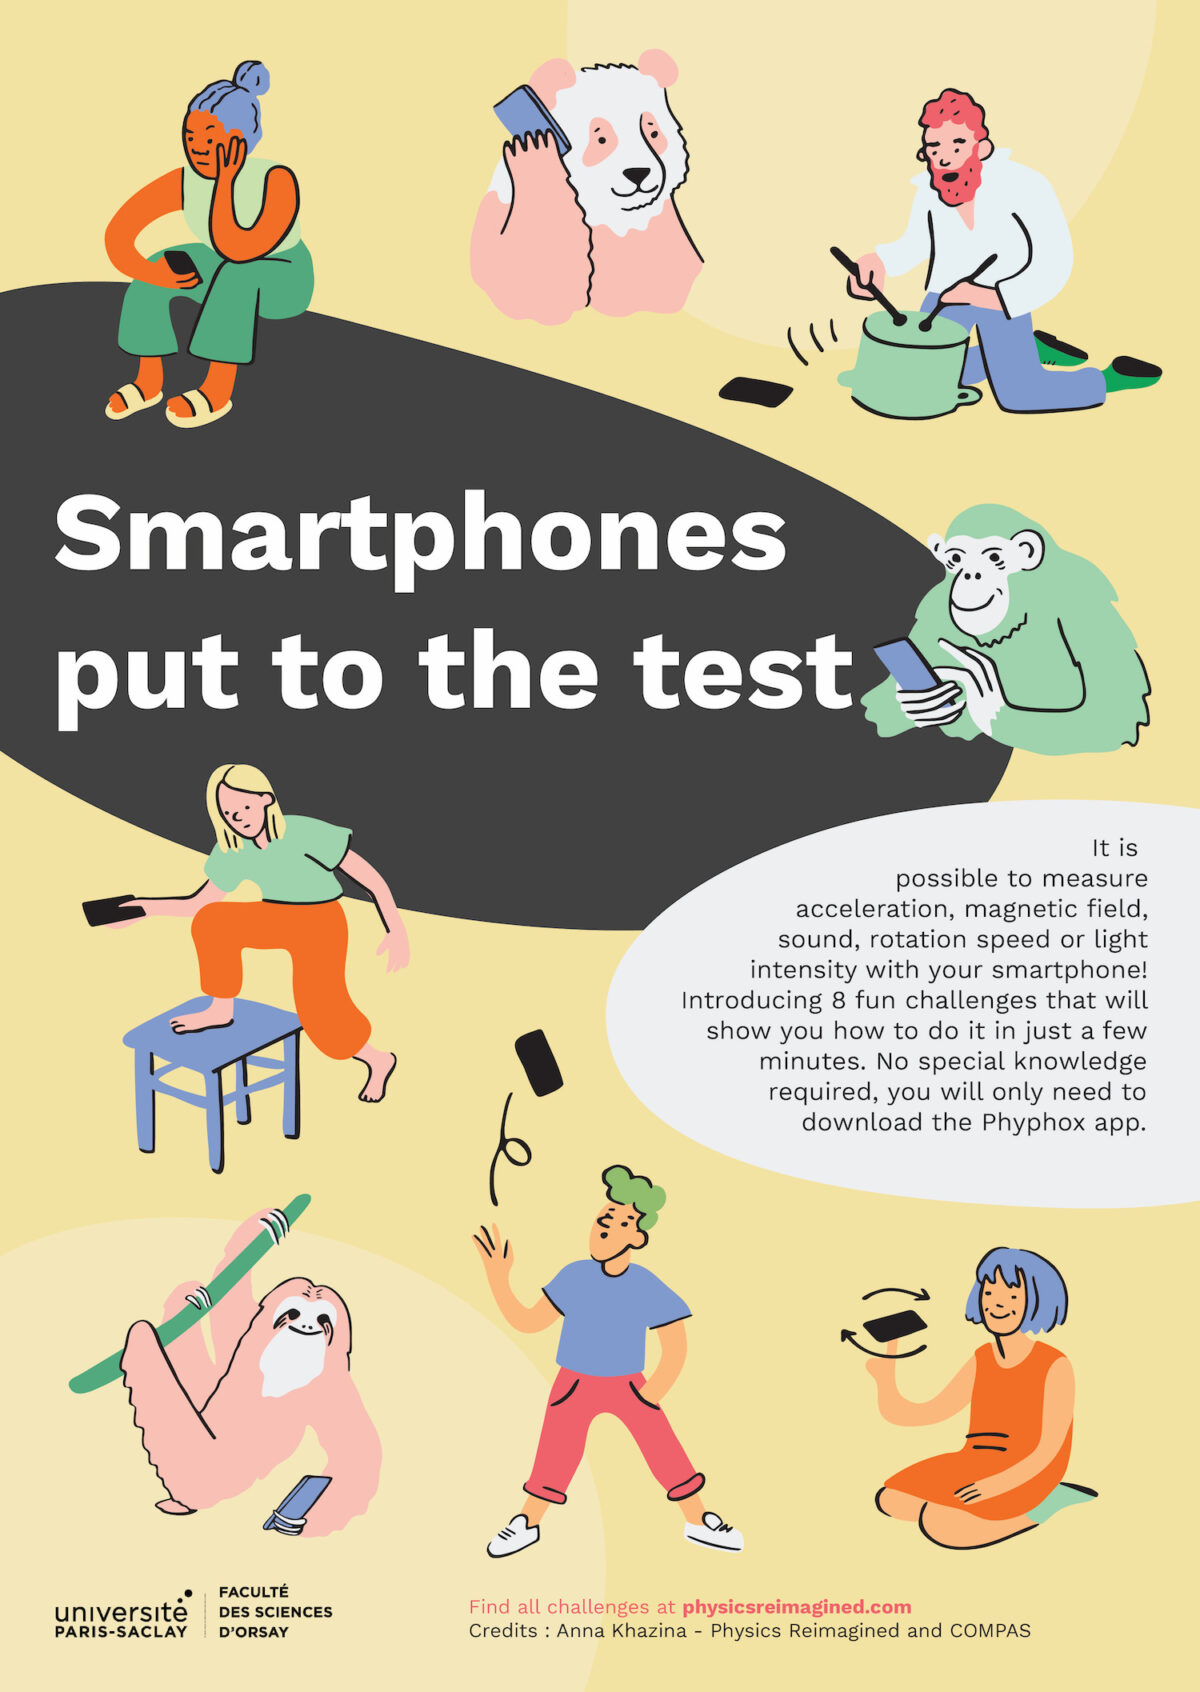 Smartphones put to the test